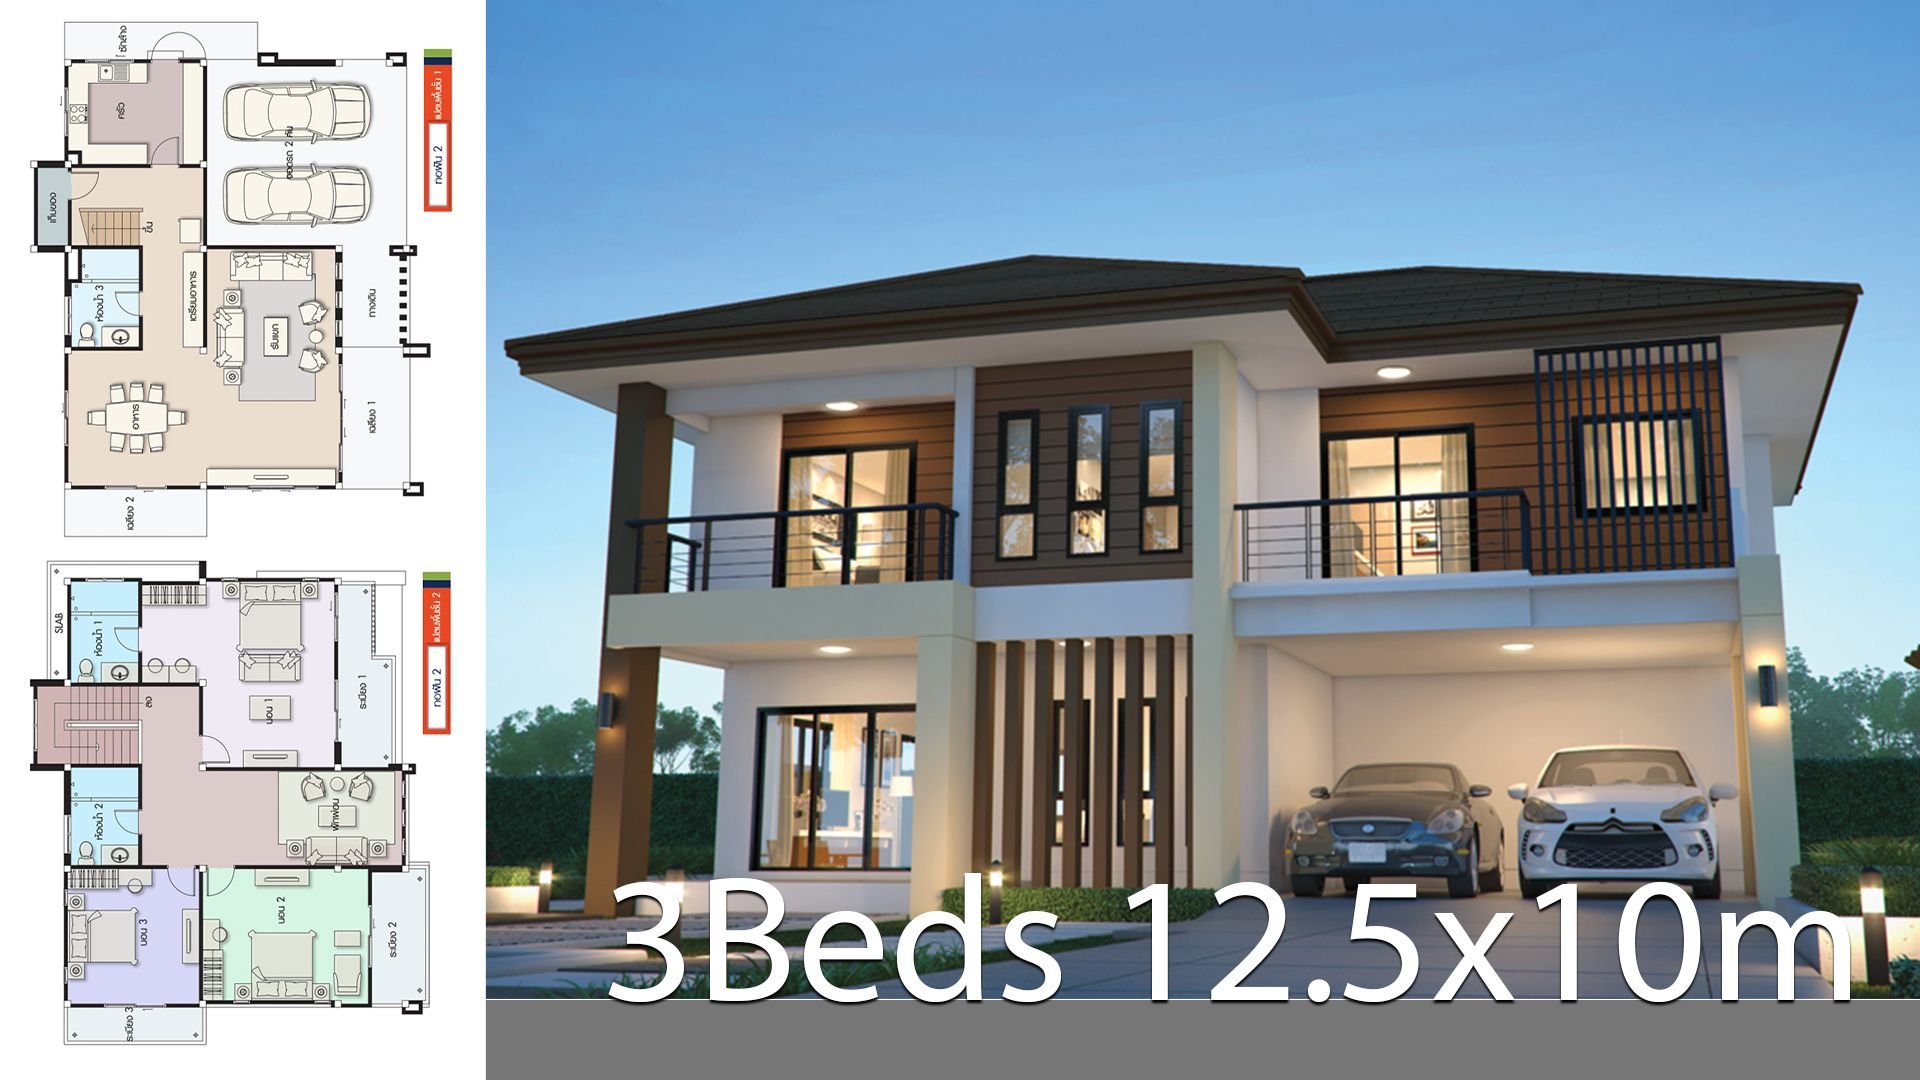 House Design 12 5x10m With 3 Bedrooms House Design 2 Storey House Design Small House Design